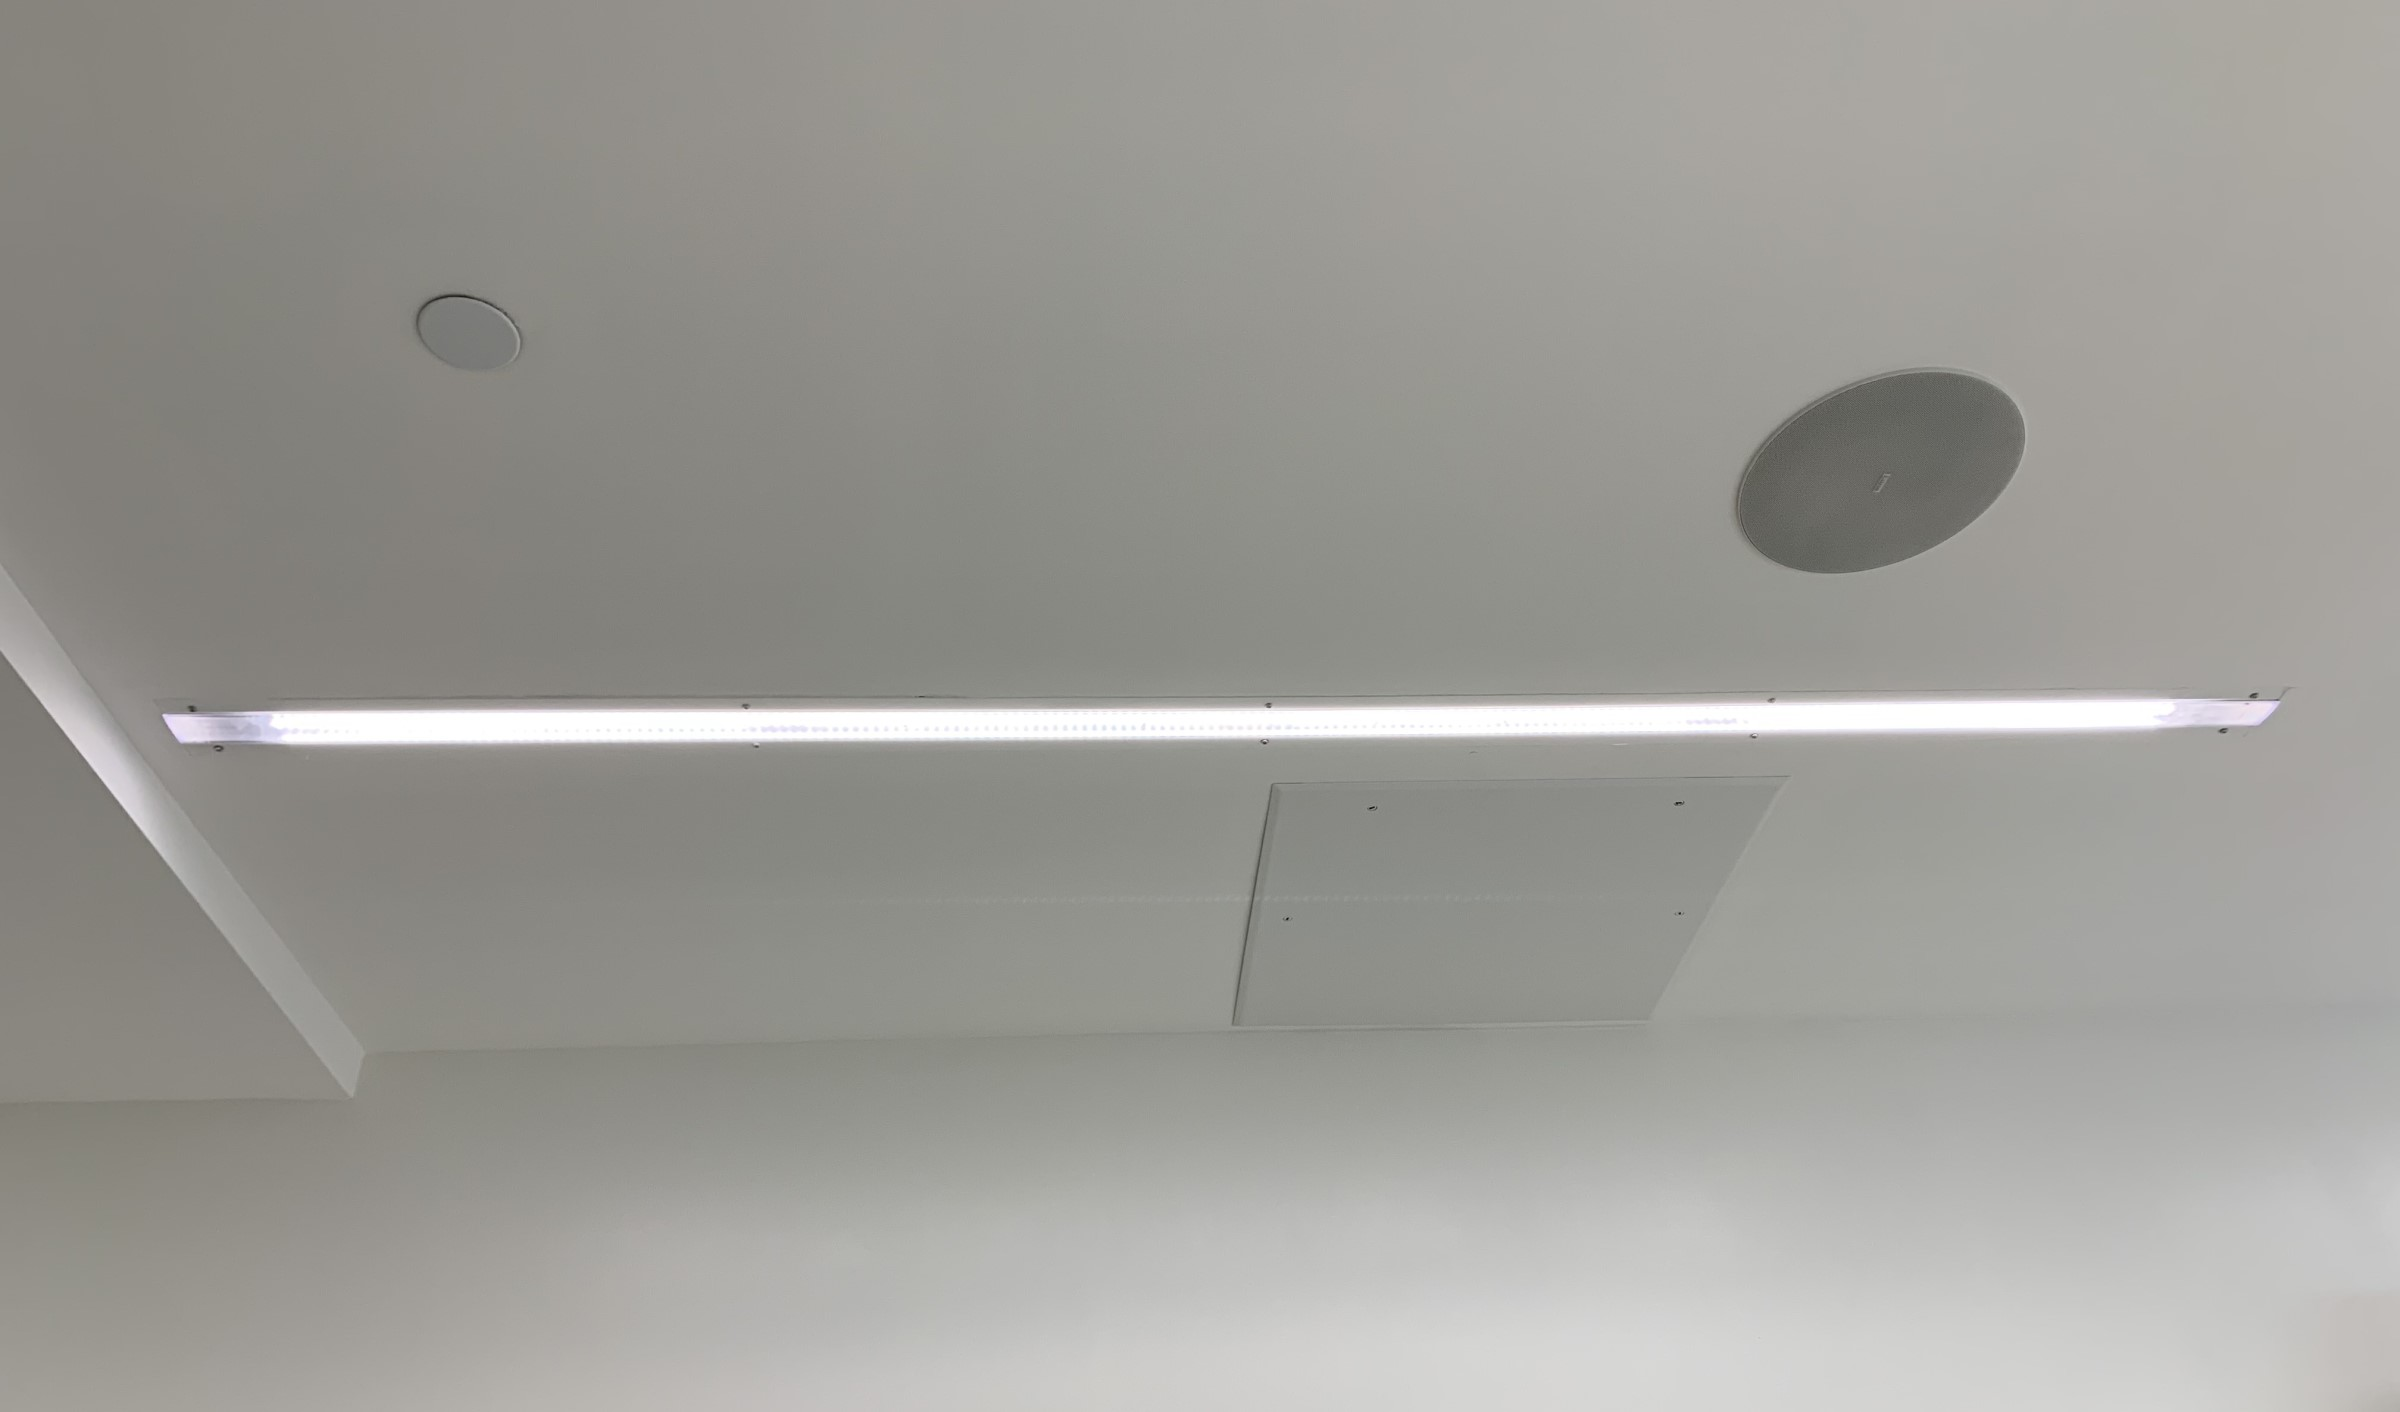 A uLED fixture installed in an operating room ceiling